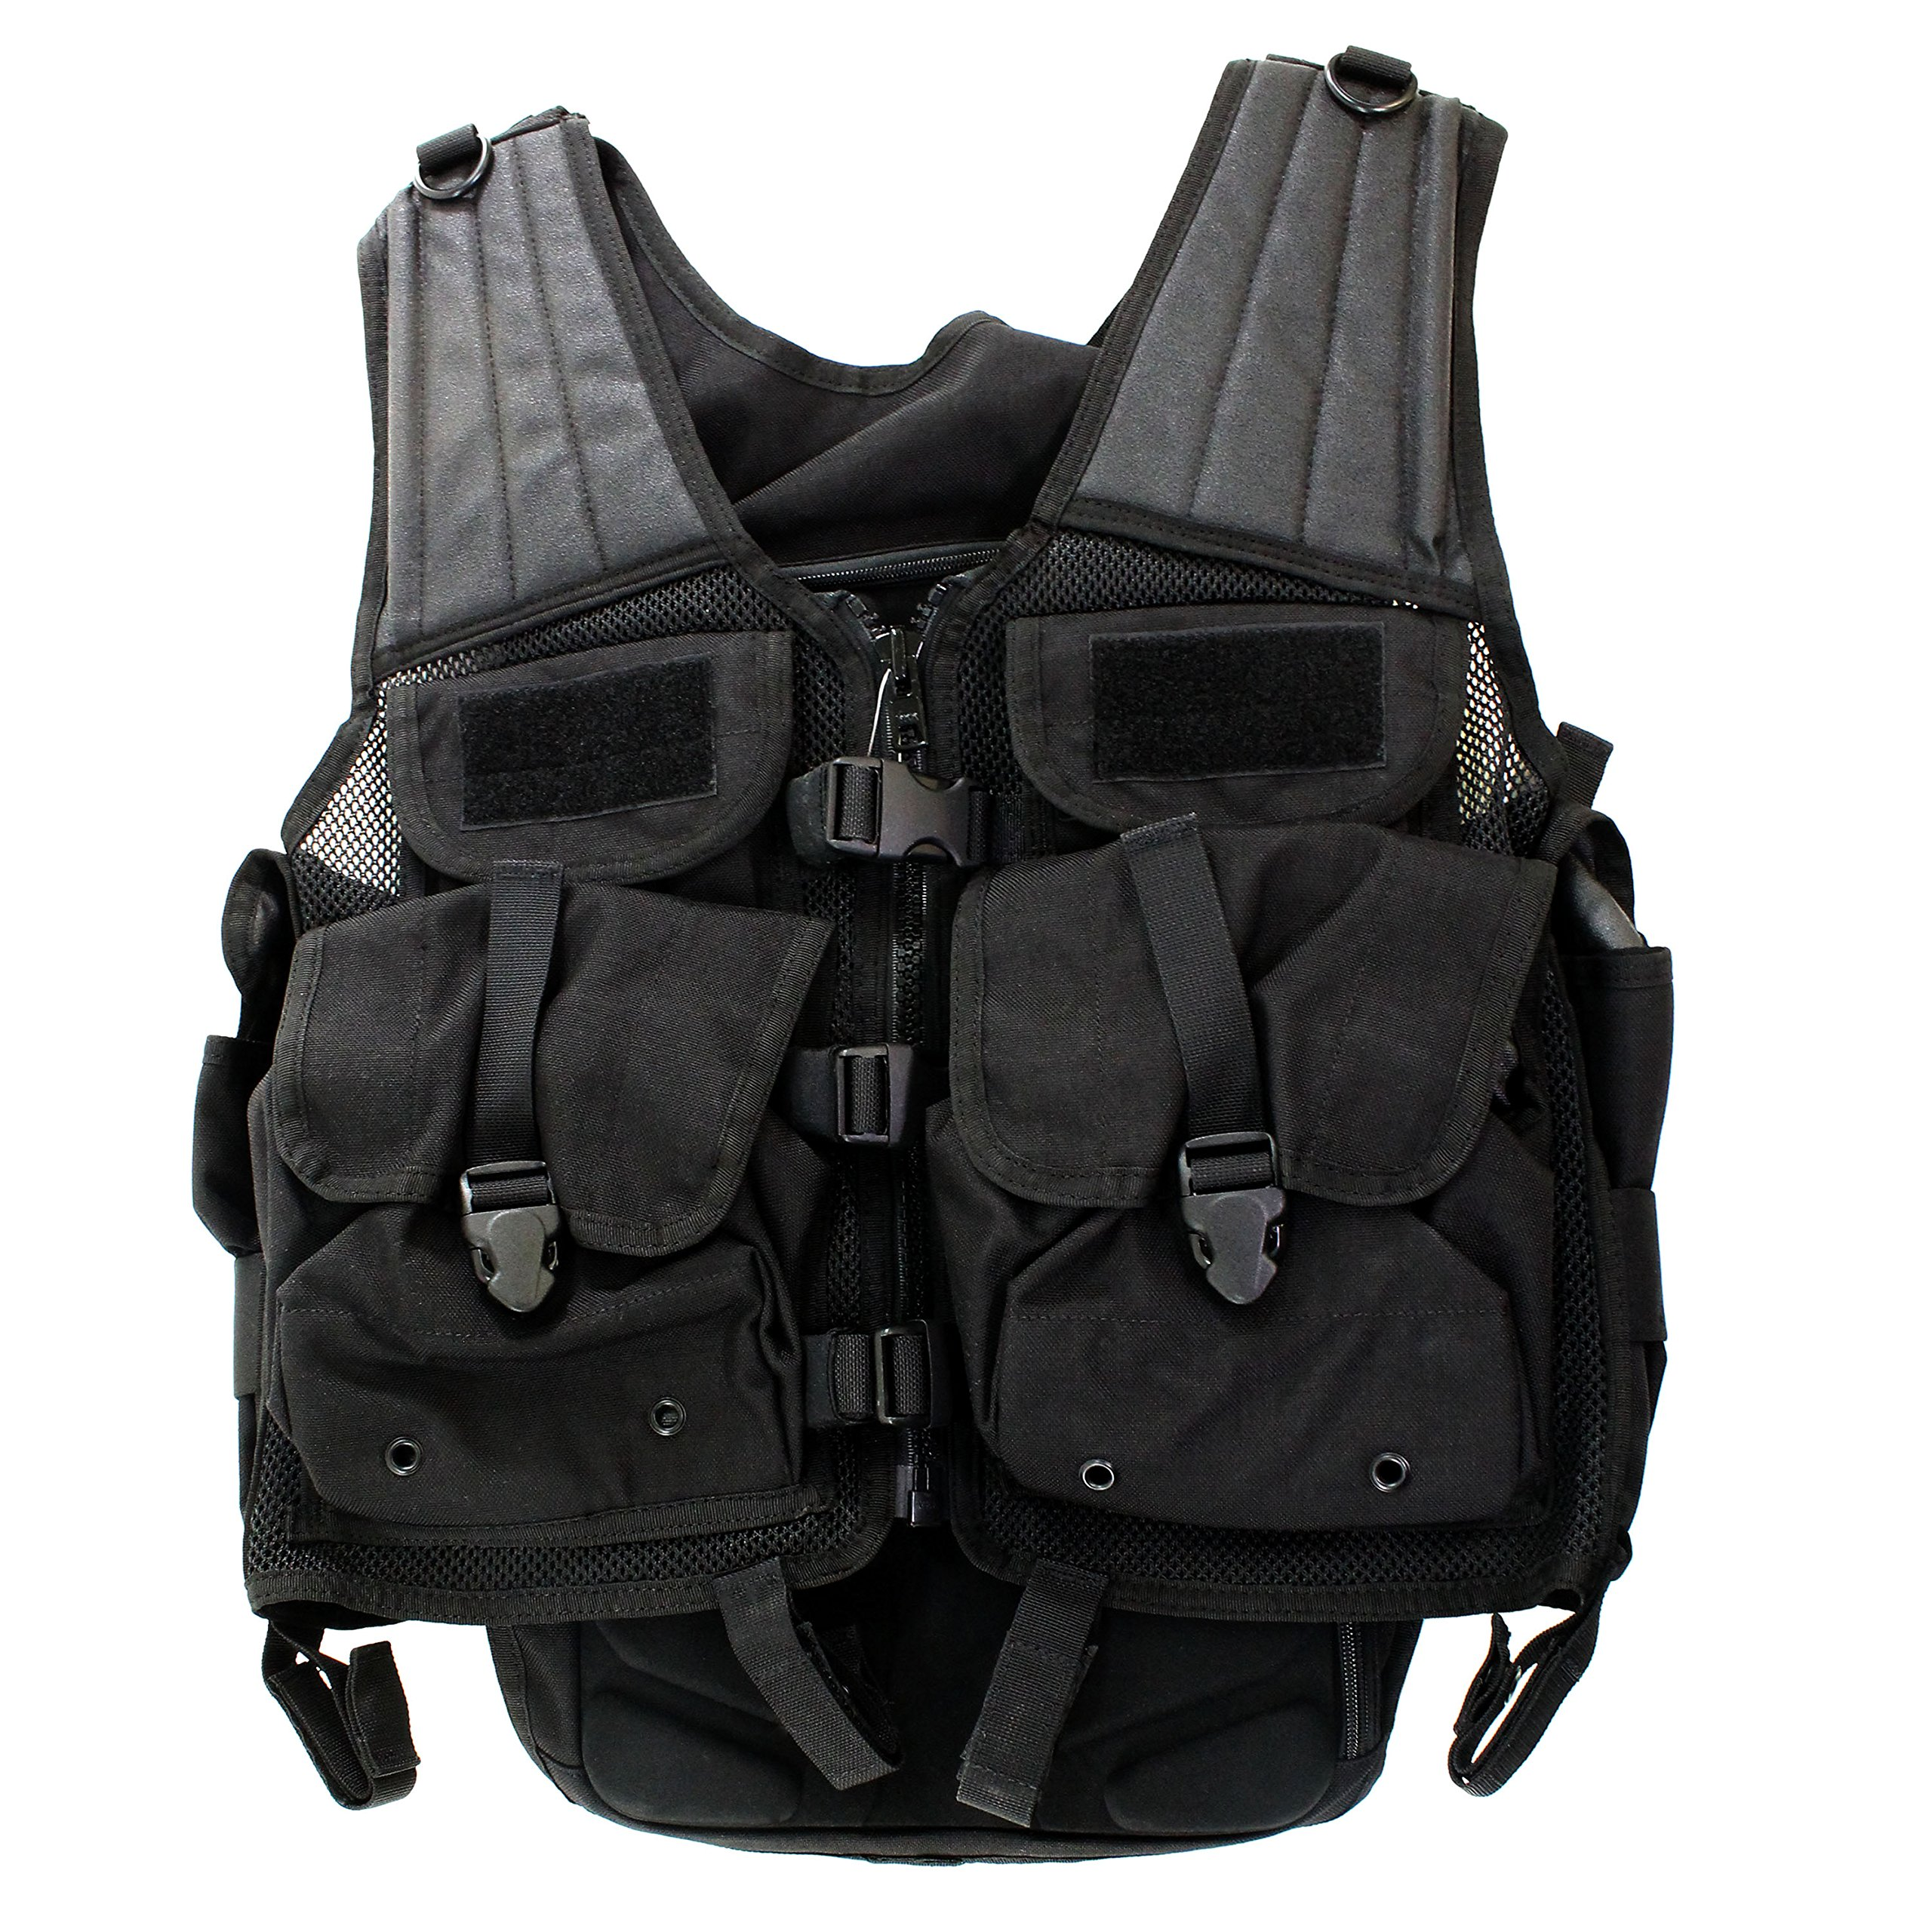 Uncle Mike's Law Enforcement Launcher Load Bearing Tactical Vest by Uncle Mike's Law Enforcement